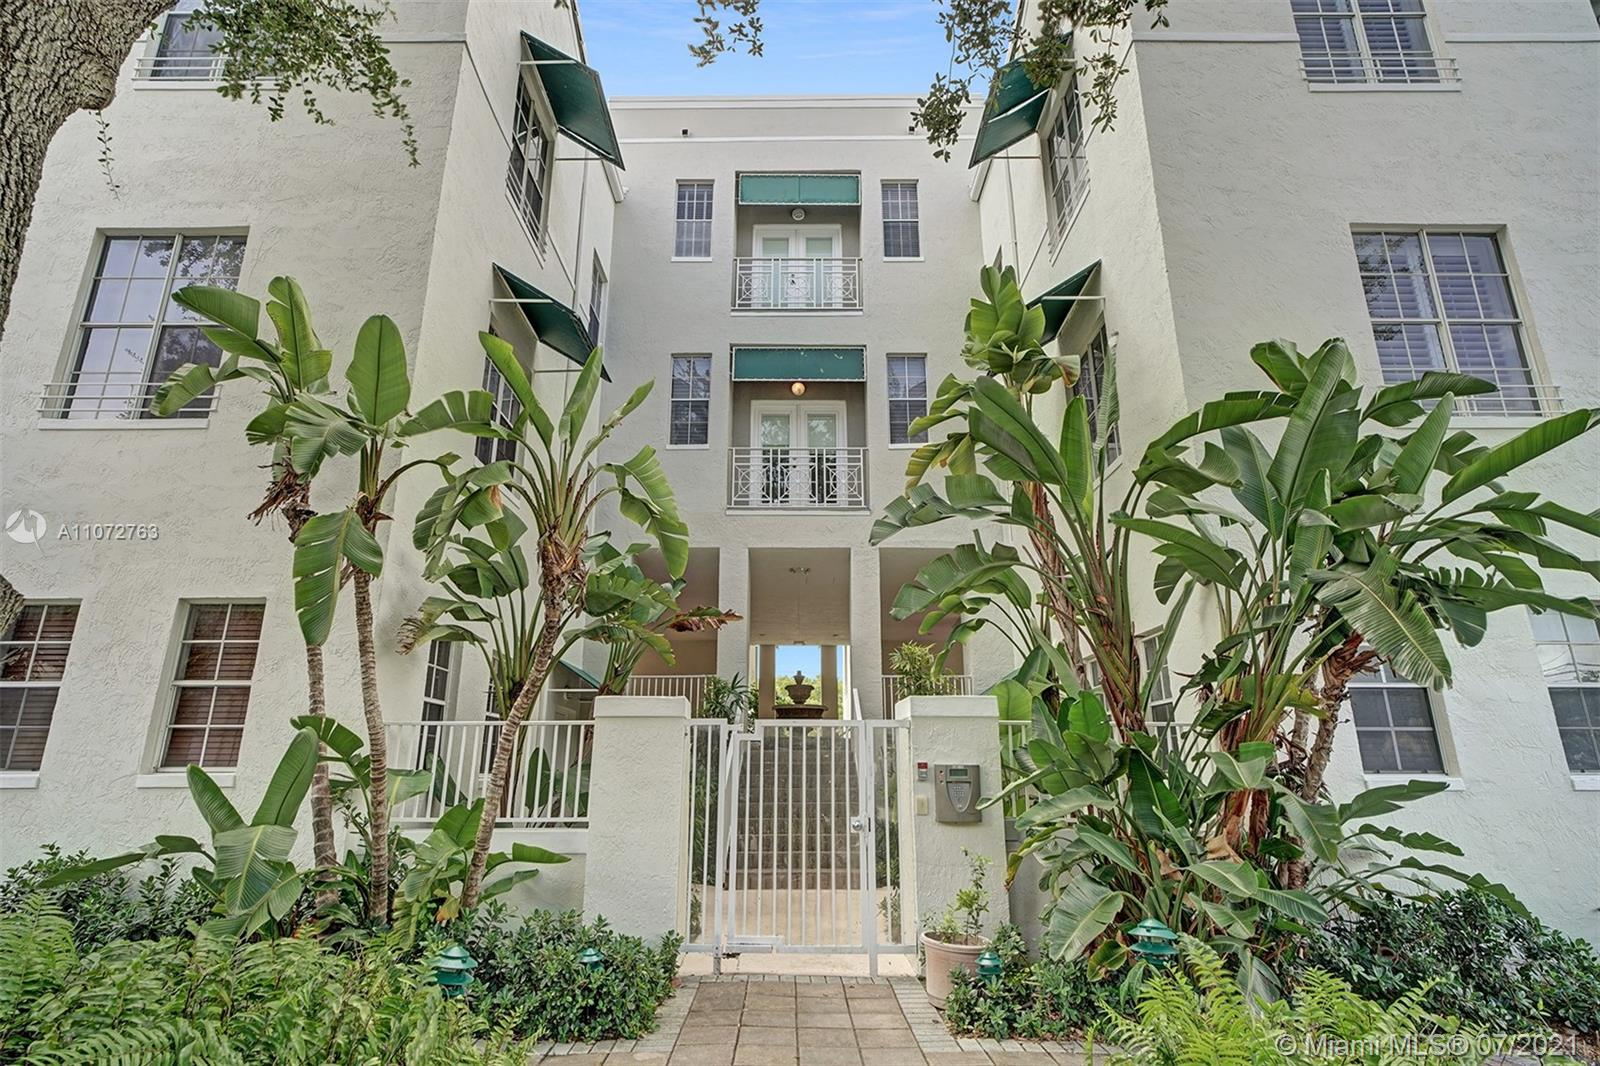 Spacious Tri-Level Condo/Townhouse in Downtown South Miami. Features 1 Car Garage and 1 Full Bedroom/Bathroom on Lower Level. 2nd Floor features remodeled Kitchen and open floorplan Dining/Living Room & a Half Bathroom. 3rd Floor features a massive Master Bedroom with high ceilings, Master Bathroom with shower, separate tub, and double vanity. Real Hardwood Floors throughout. FANTASTIC LOCATION! Walking distance from Winn-Dixie and nearby shops/restaurants. Short Walk to Metrorail. Close to University of Miami.